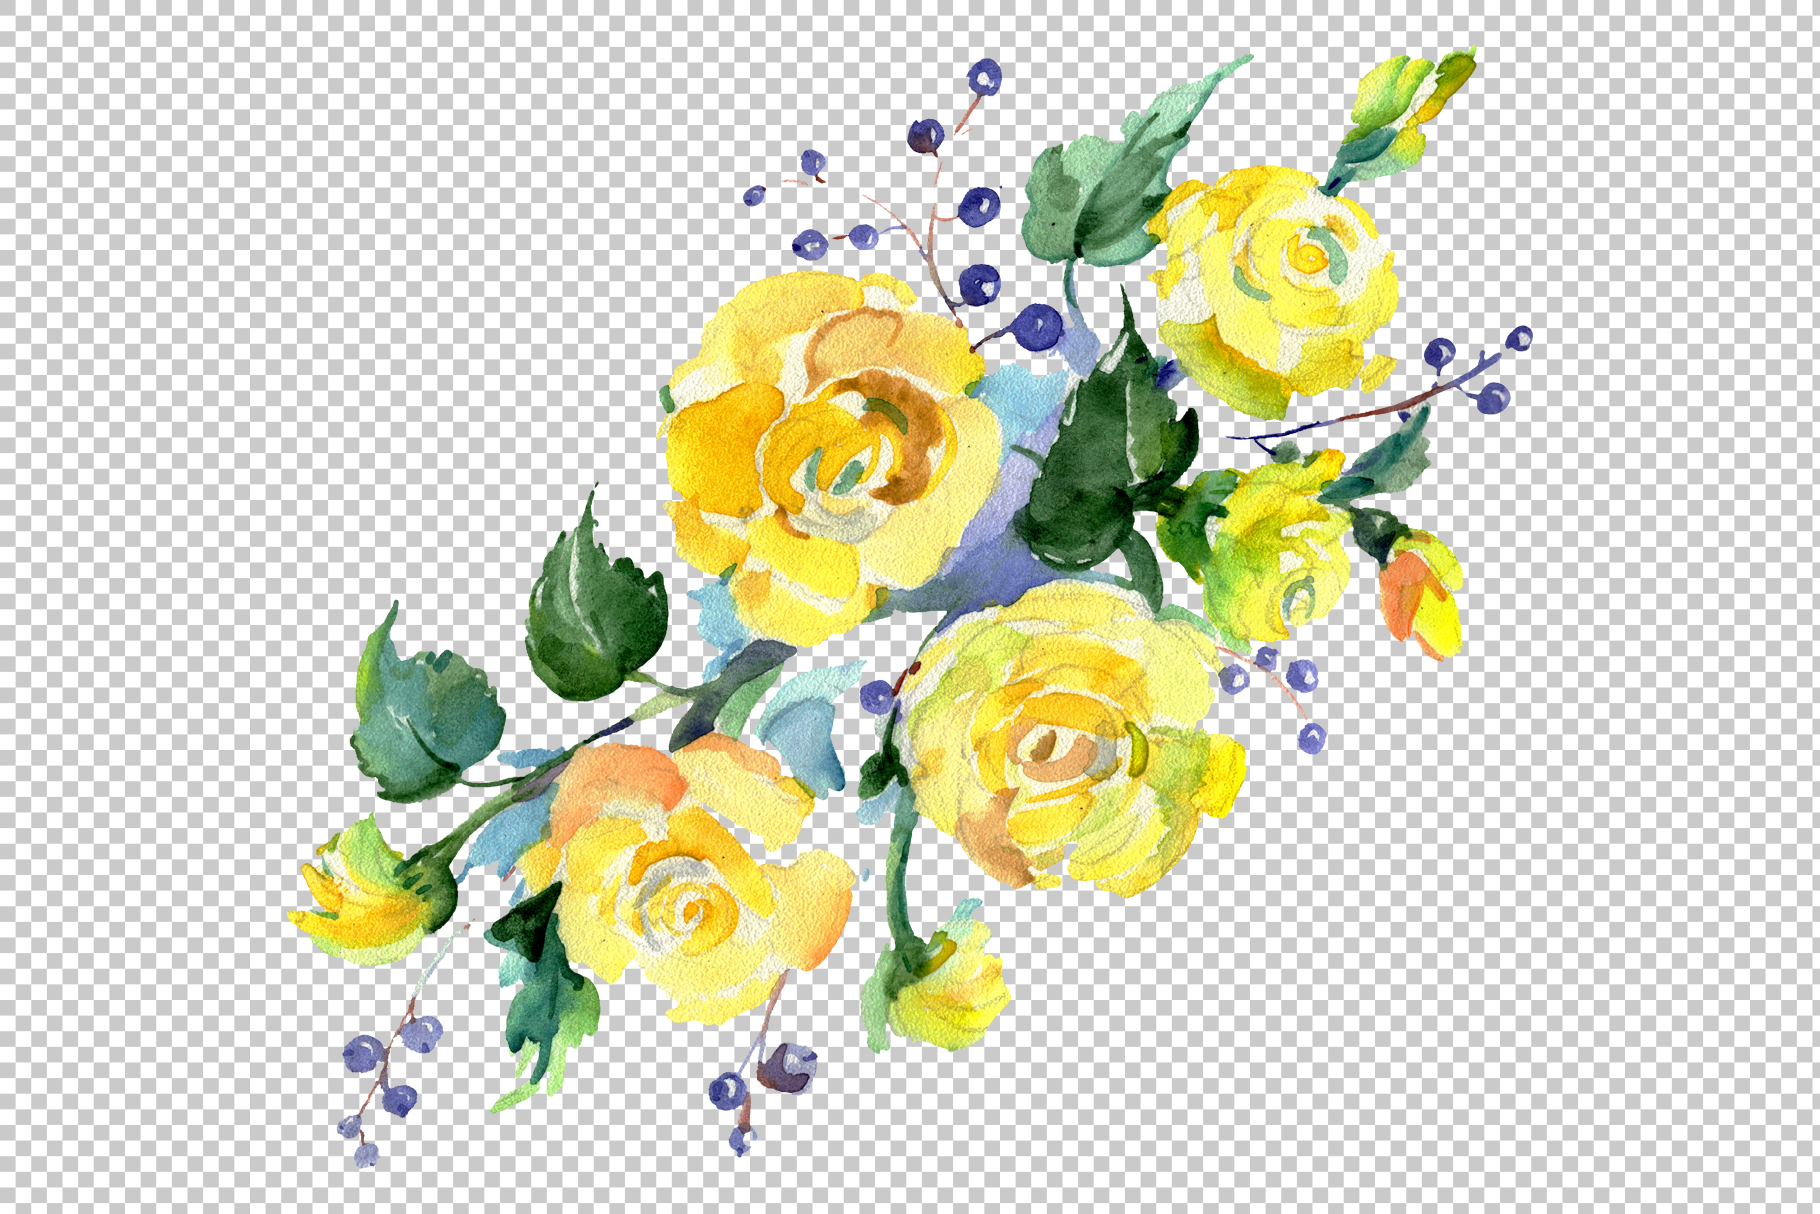 Bouquet of flowers matures feelings watercolor png example image 5